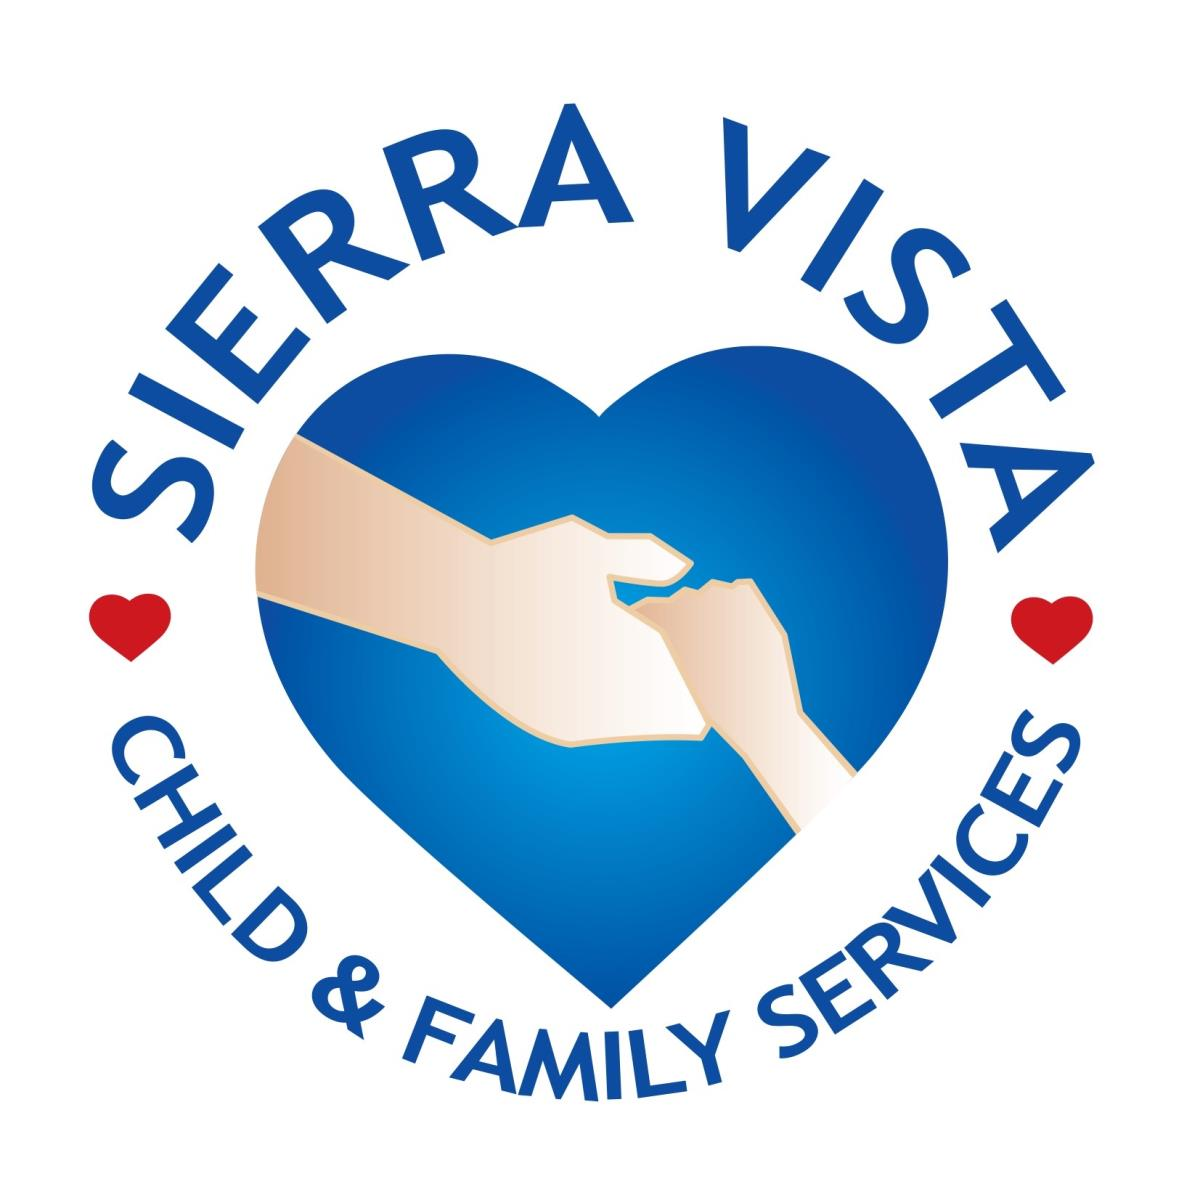 Sierra Vista Child and Family Services